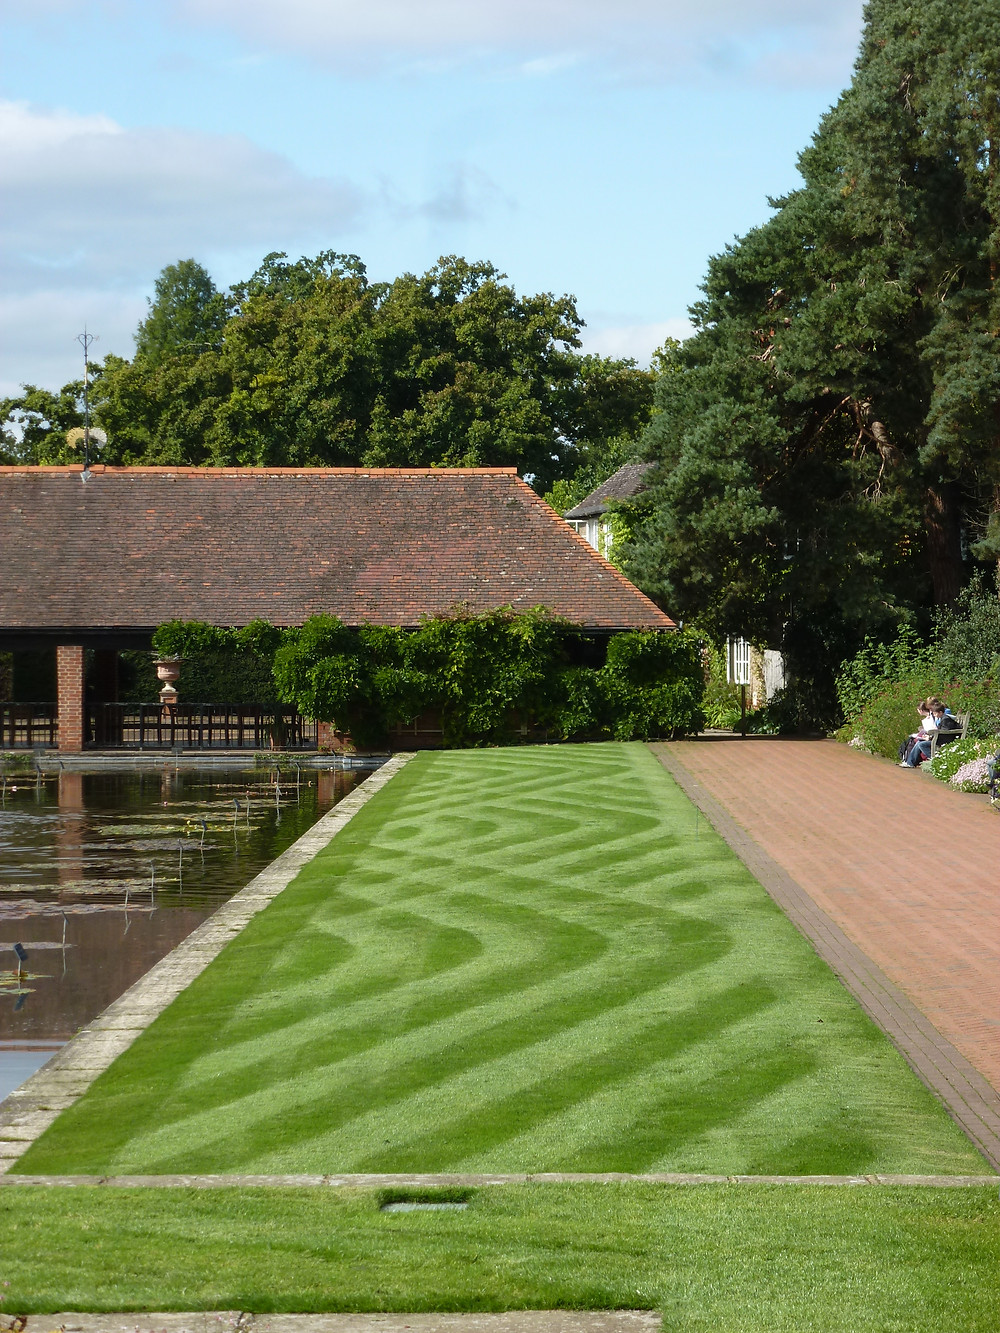 Mowing as art form, RHS Wisley